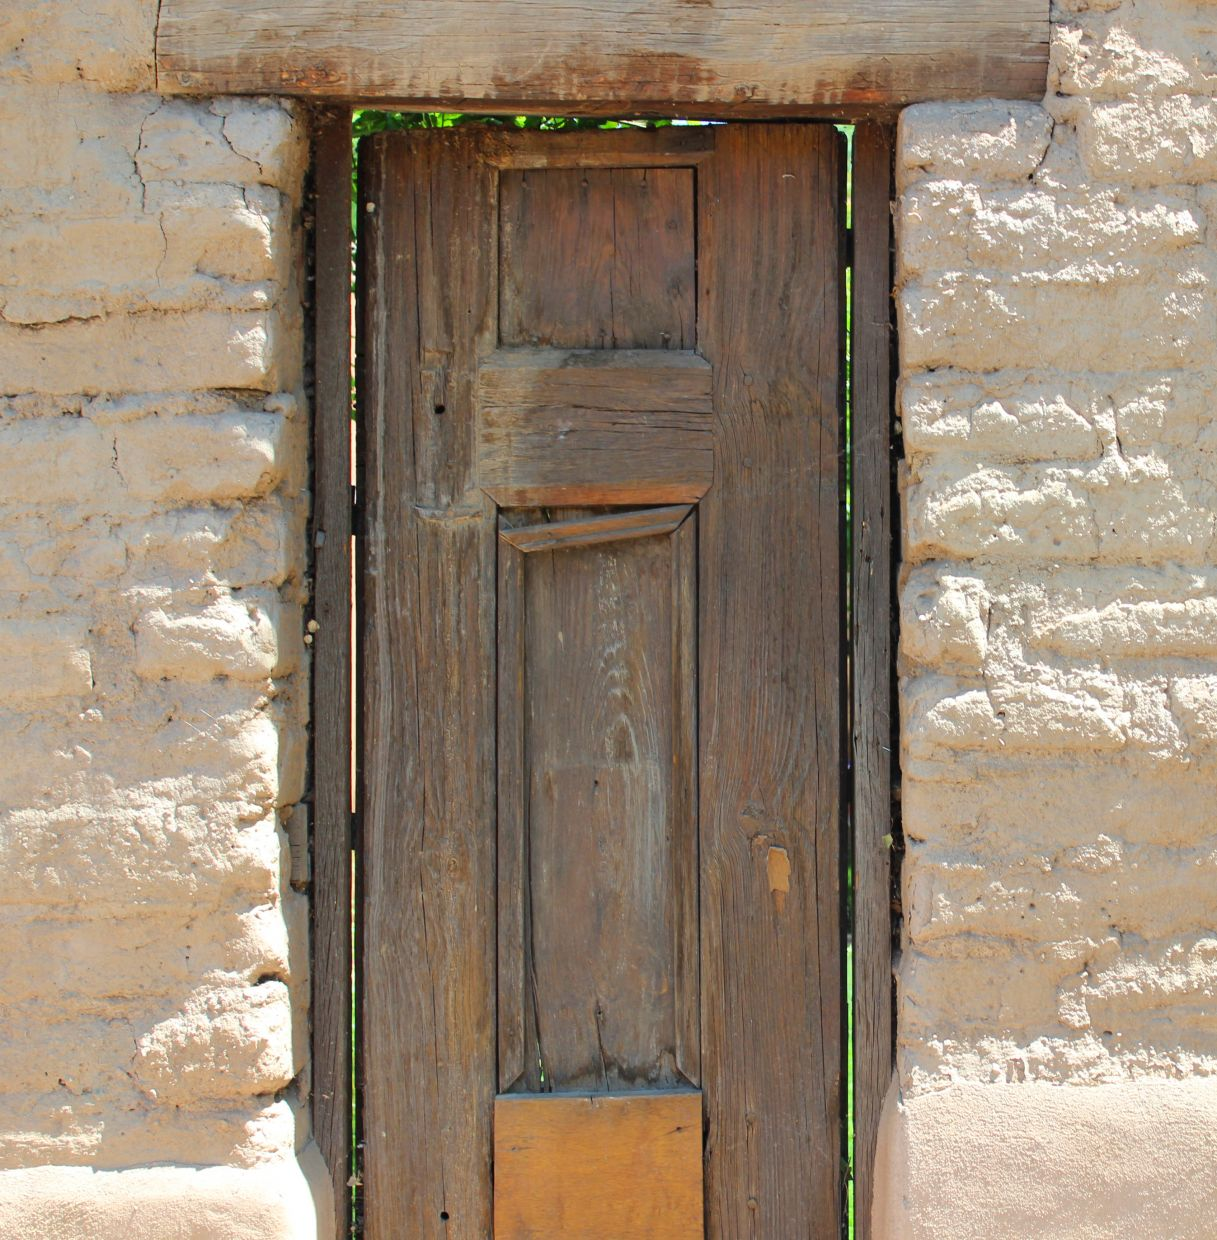 Below we\u0027ve collected a few of our favorites that have a-door-ned entries throughout our travels. (S0 soooooo sorry \u2026 couldn\u0027t resist!) & Southwestern Decor: Wooden Doors | Southwest Discovered